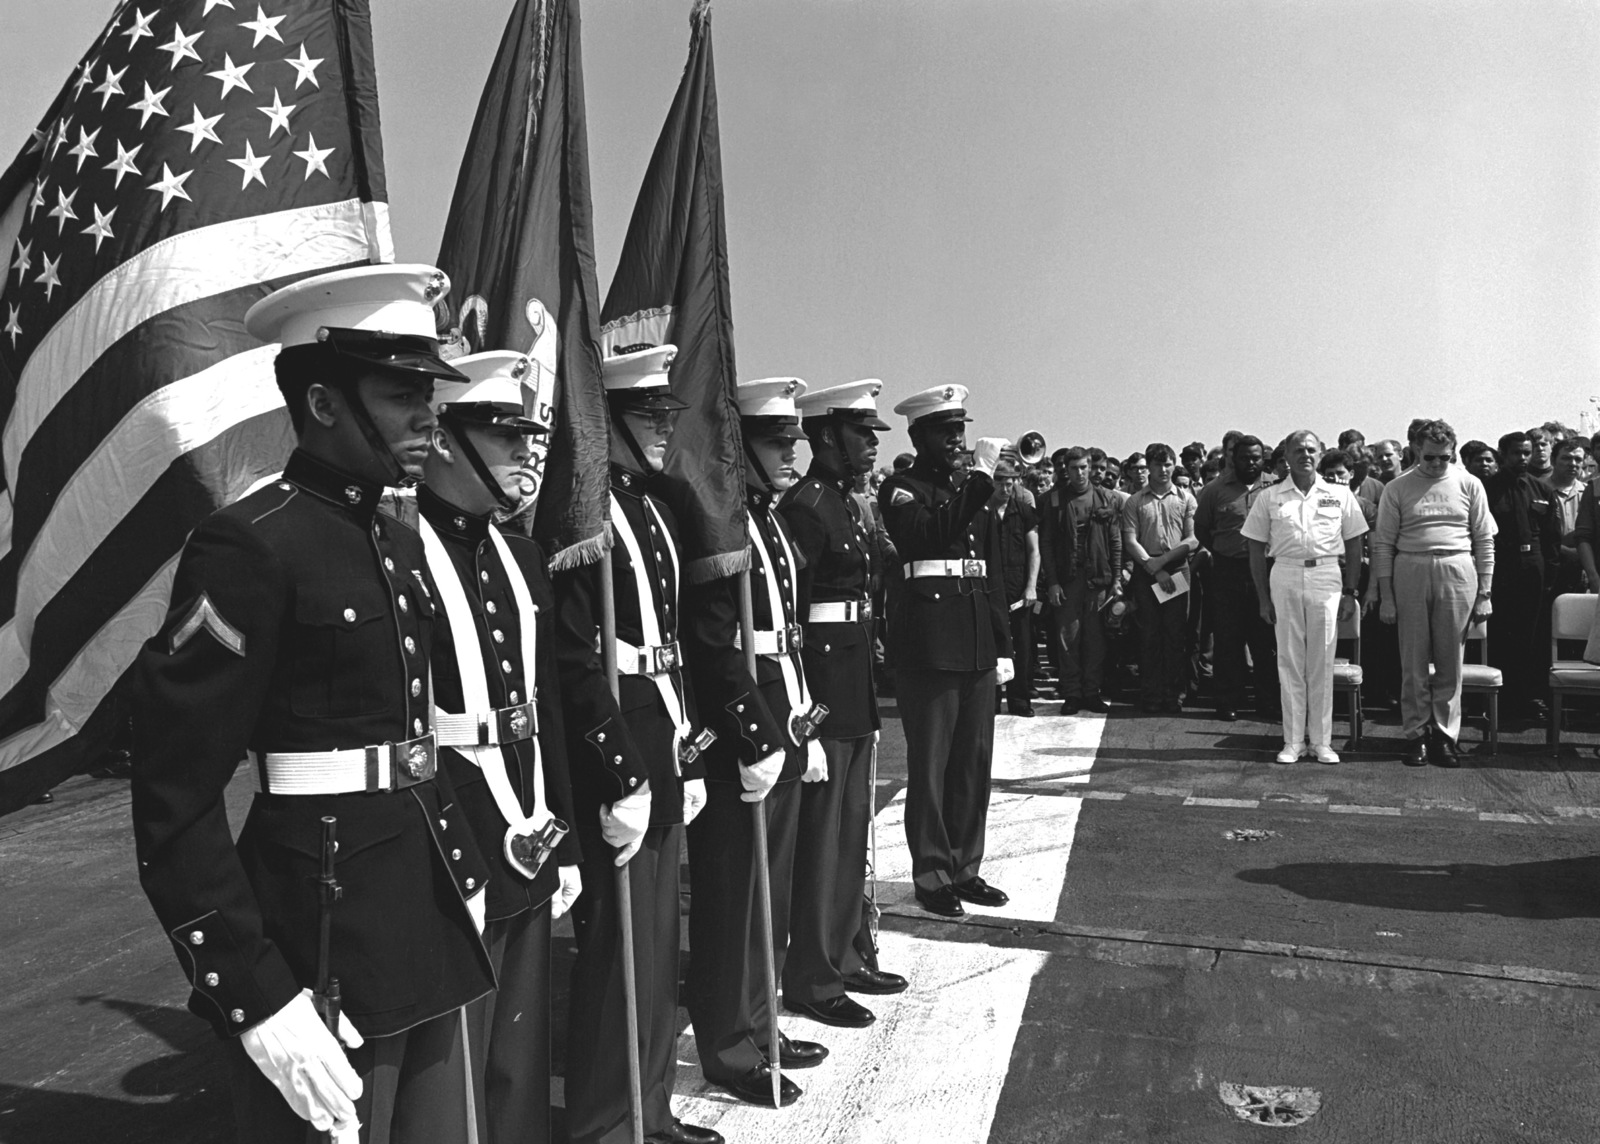 a u s  marine corps color guard stands at attention during a memorial service on the flight deck